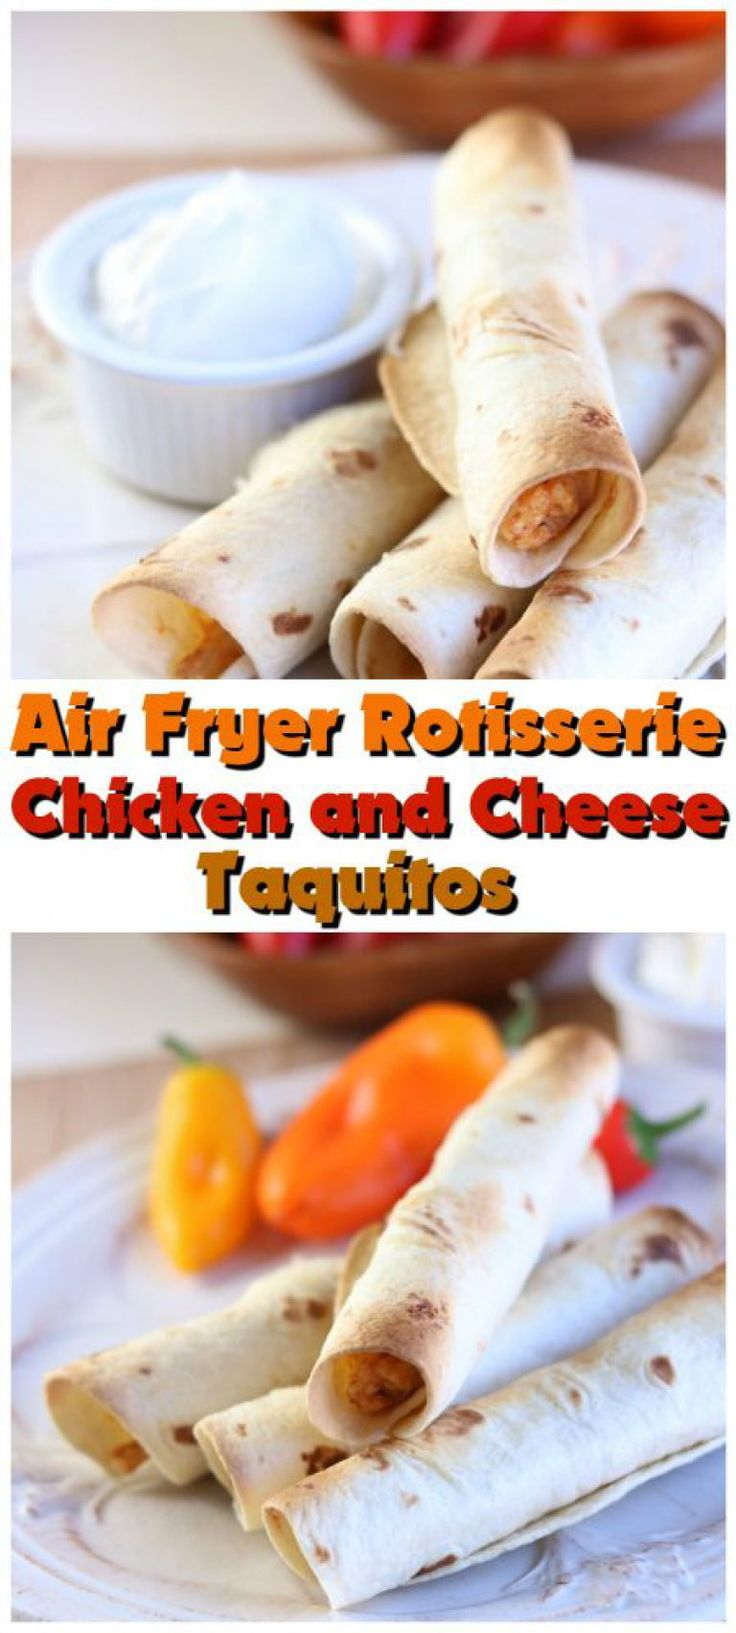 Air Fryer Rotisserie Chicken and Cheese Taquitos Recipe